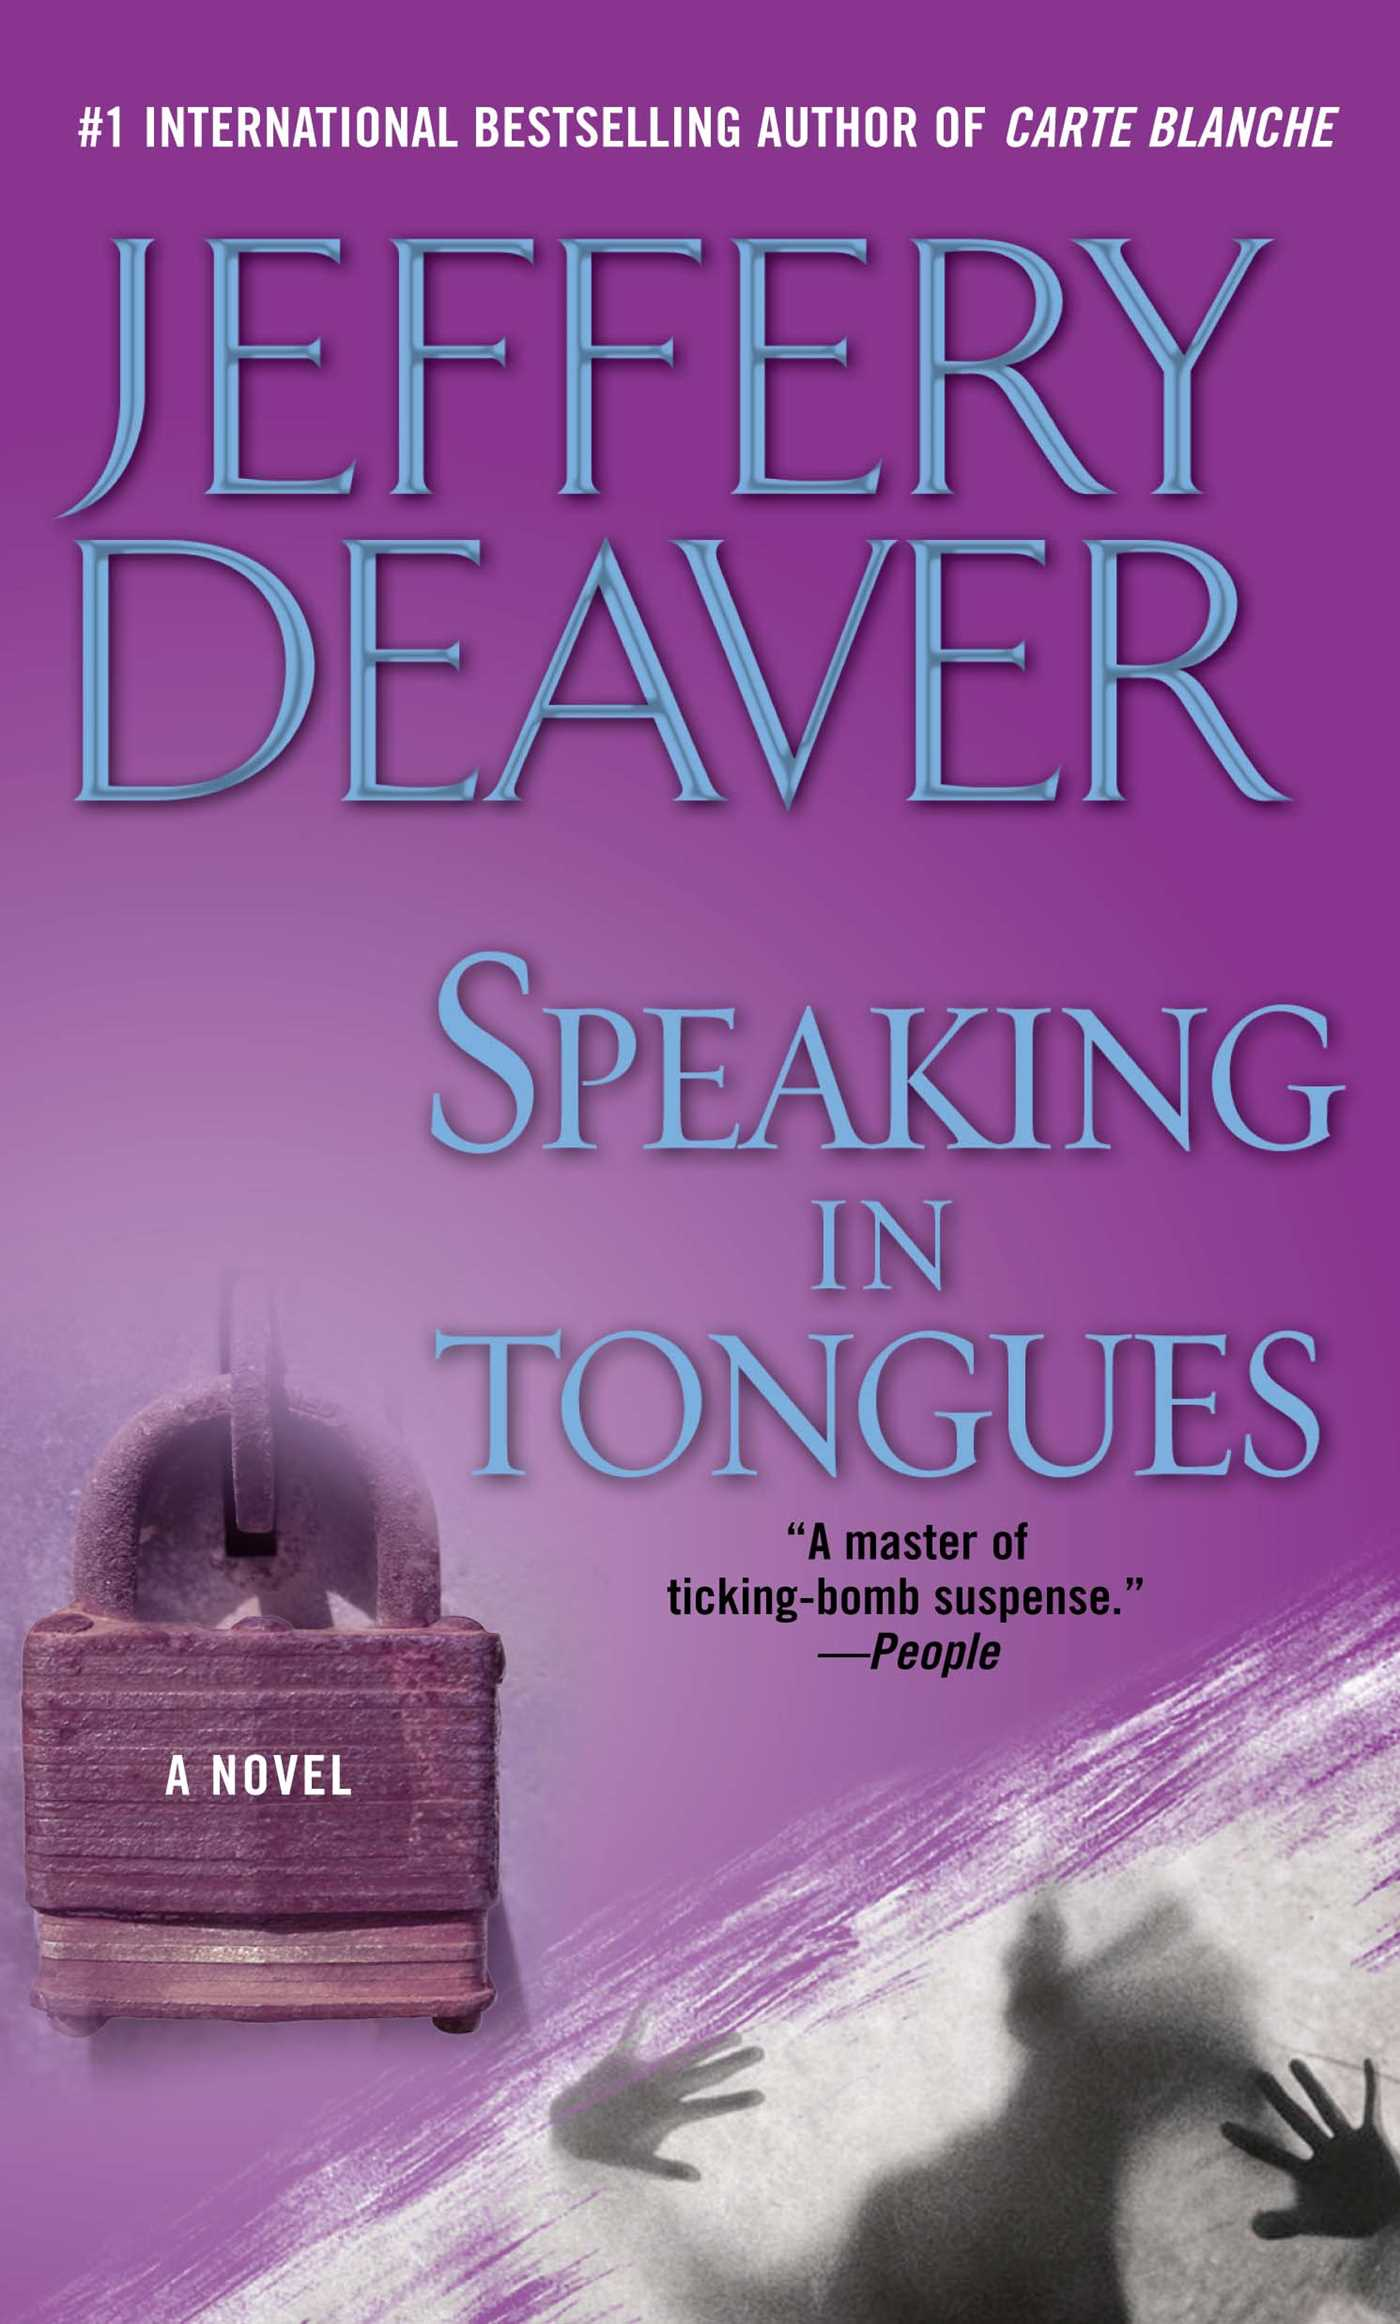 Speaking-in-tongues-9780743211673_hr